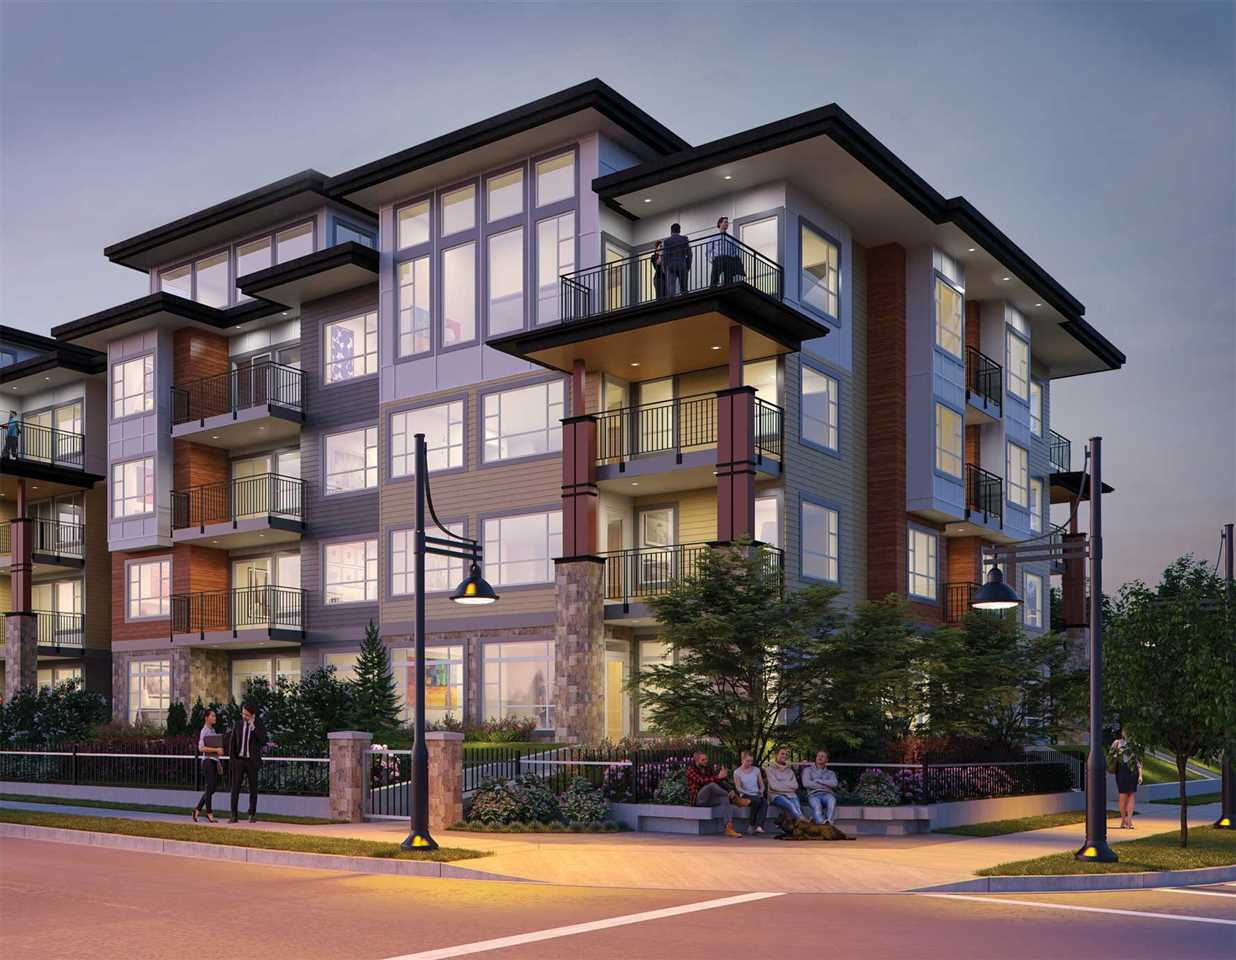 Maple Ridge?s newest development MacLean Homes, Edge 2. Sleek contemporary architecture outside with modern living on the inside. Studio, one and 2 bedroom with den or 2 level loft residences. All Edge homes are designed to incorporate the latest styles and trends with top quality materials. Modern kitchen features contemporary cabinetry, gorgeous granite countertops and sleek stainless steel appliances. Centrally located close to recreation, transportation West Coast Express close too) community centre and all levels of schools. Live. Work. Play.. Edge 2. ************SOLD*************